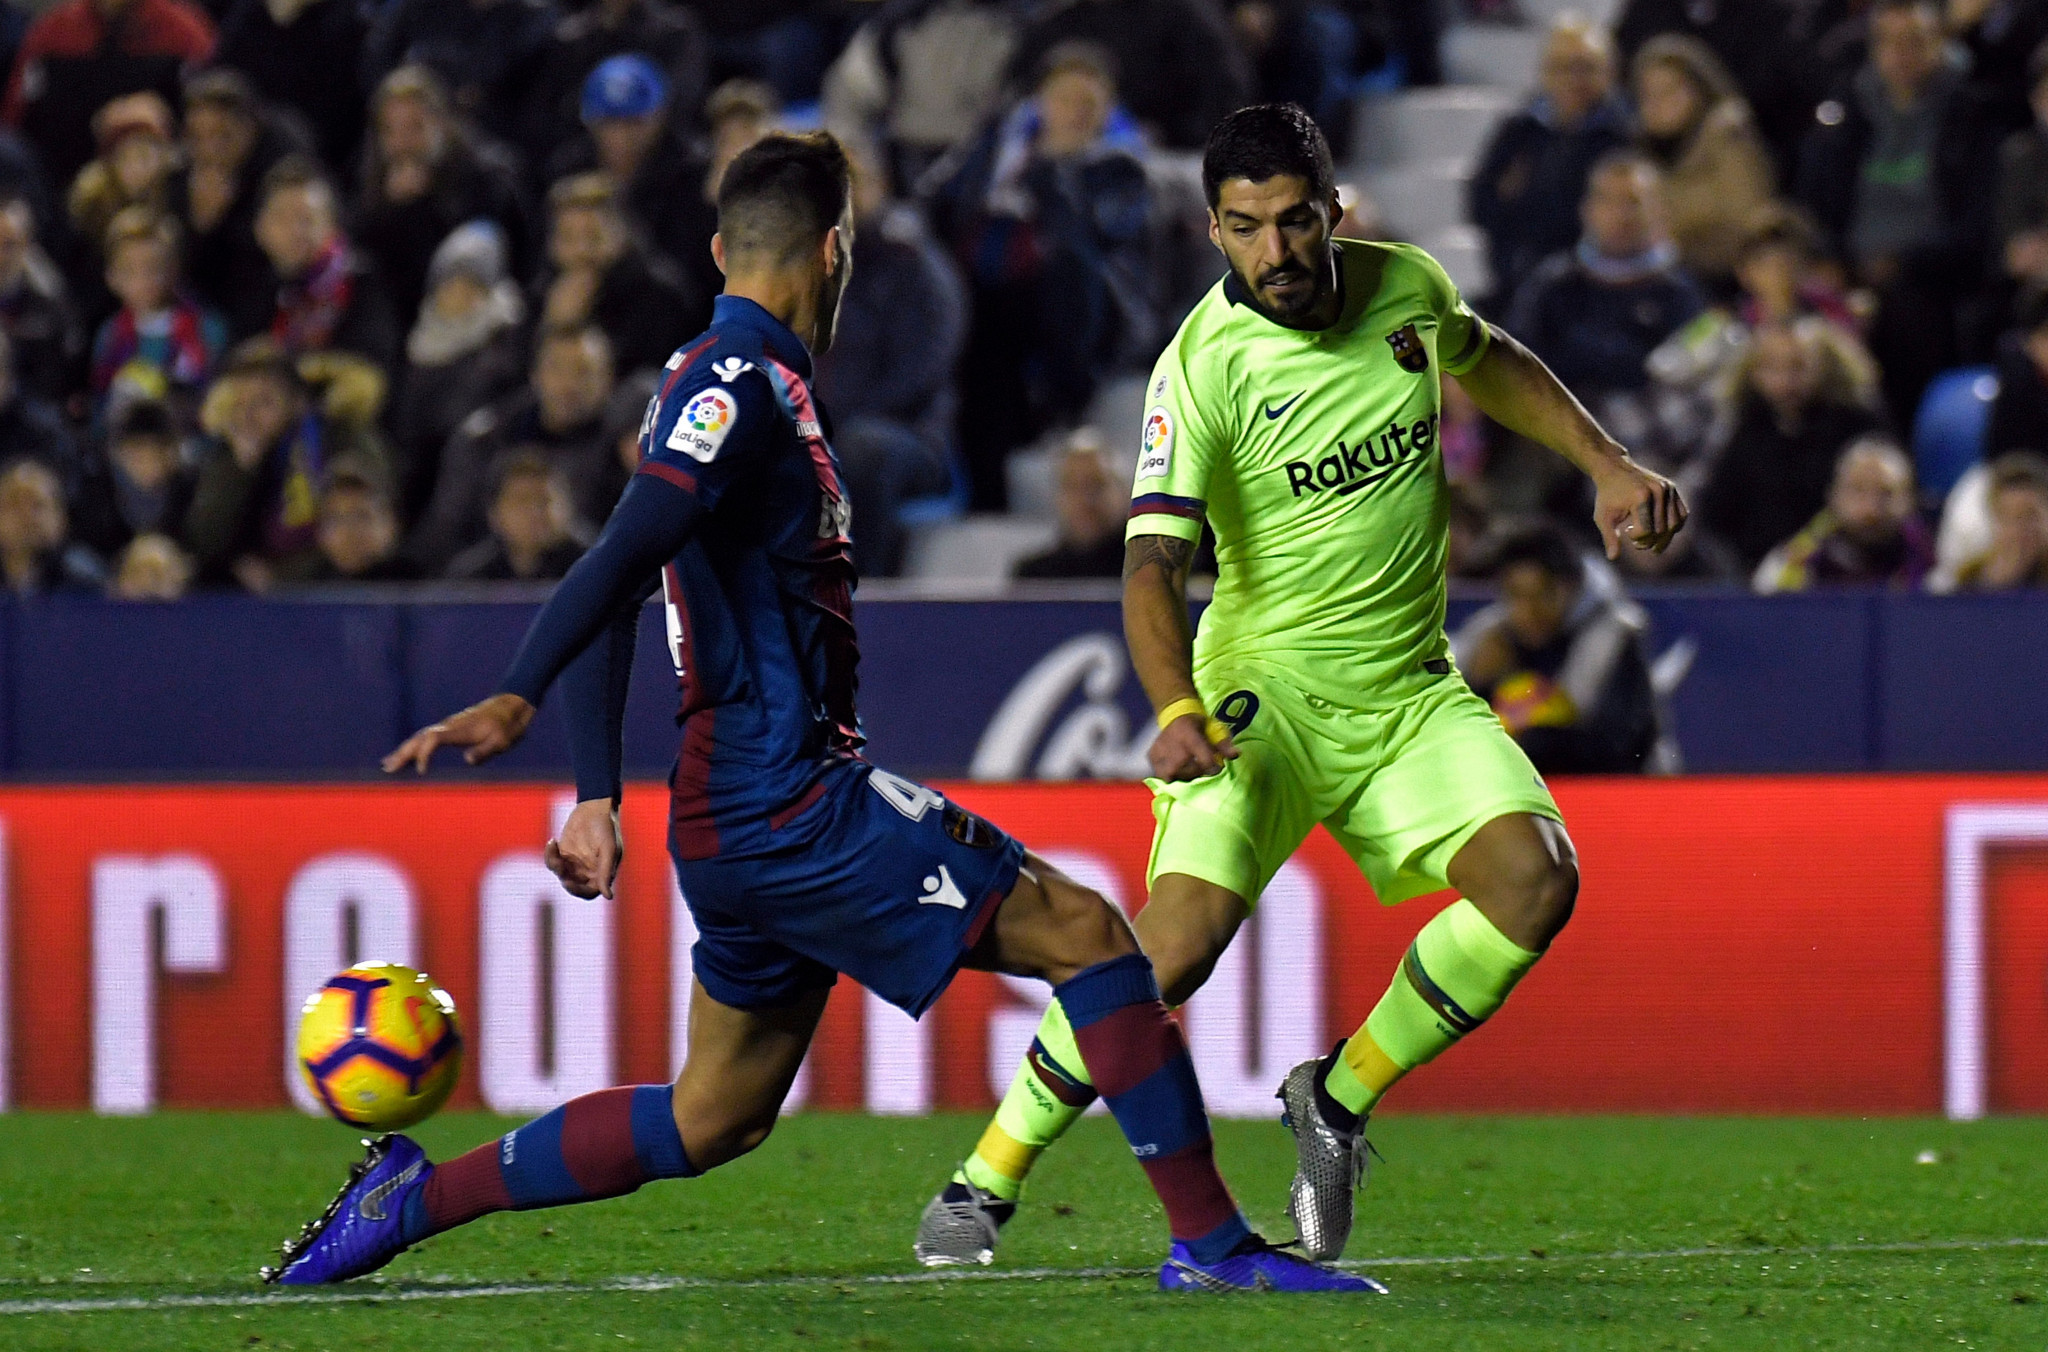 Barcelona were due to play in the first regular La Liga season game to be held outside of Spain ©Getty Images